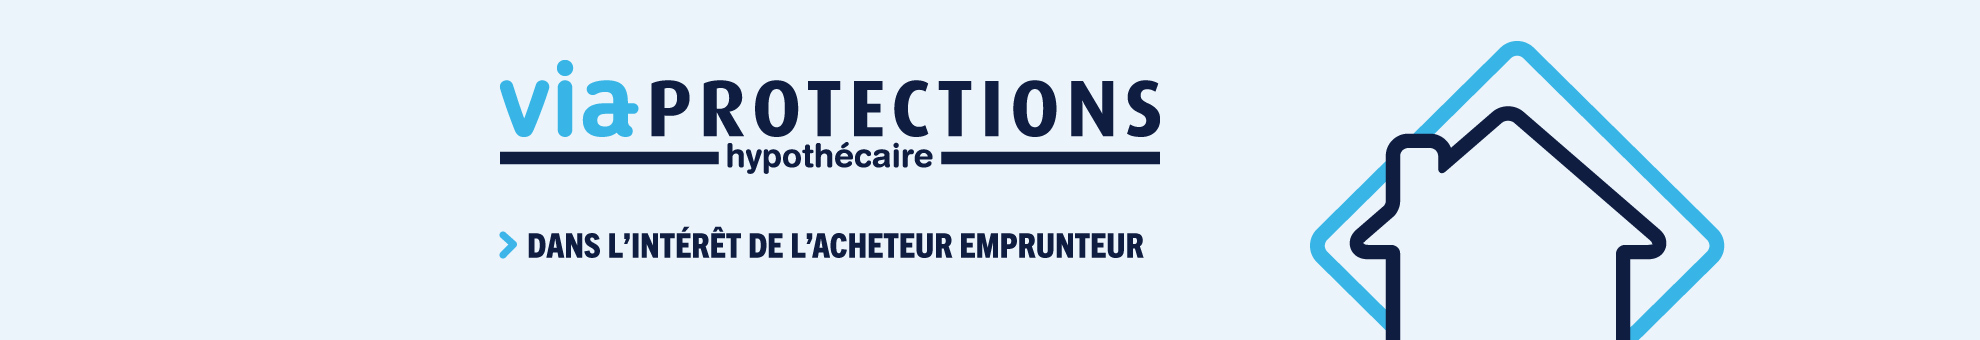 protection-hypothecaire-fr-bandeau.jpg